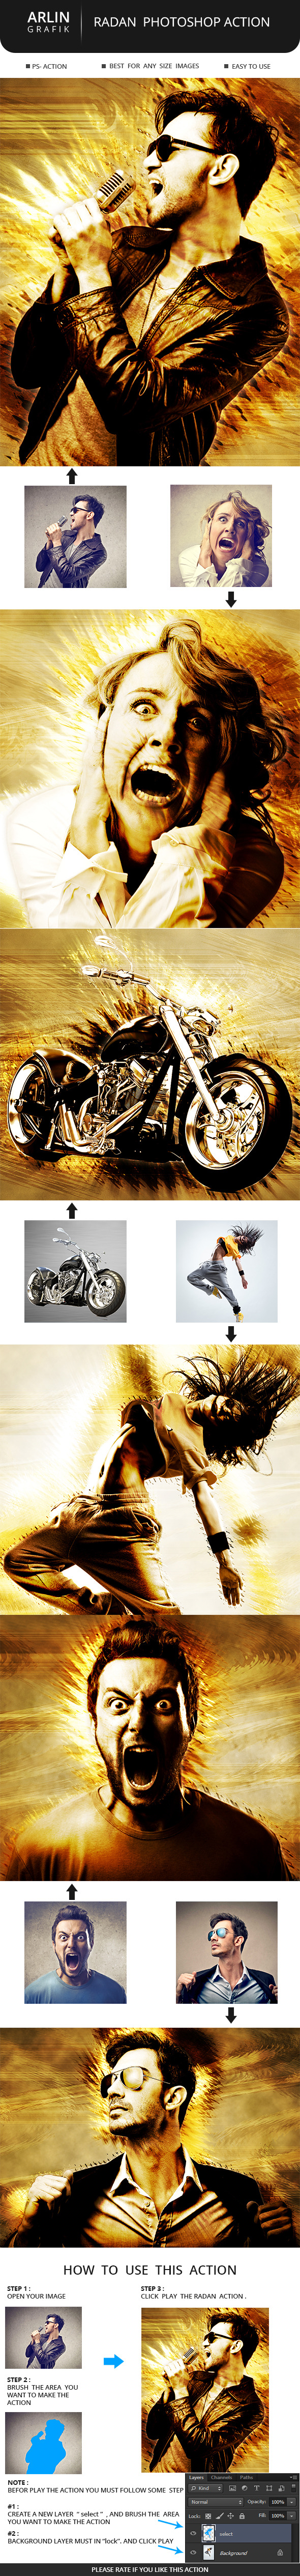 GraphicRiver Radan Action 11265159